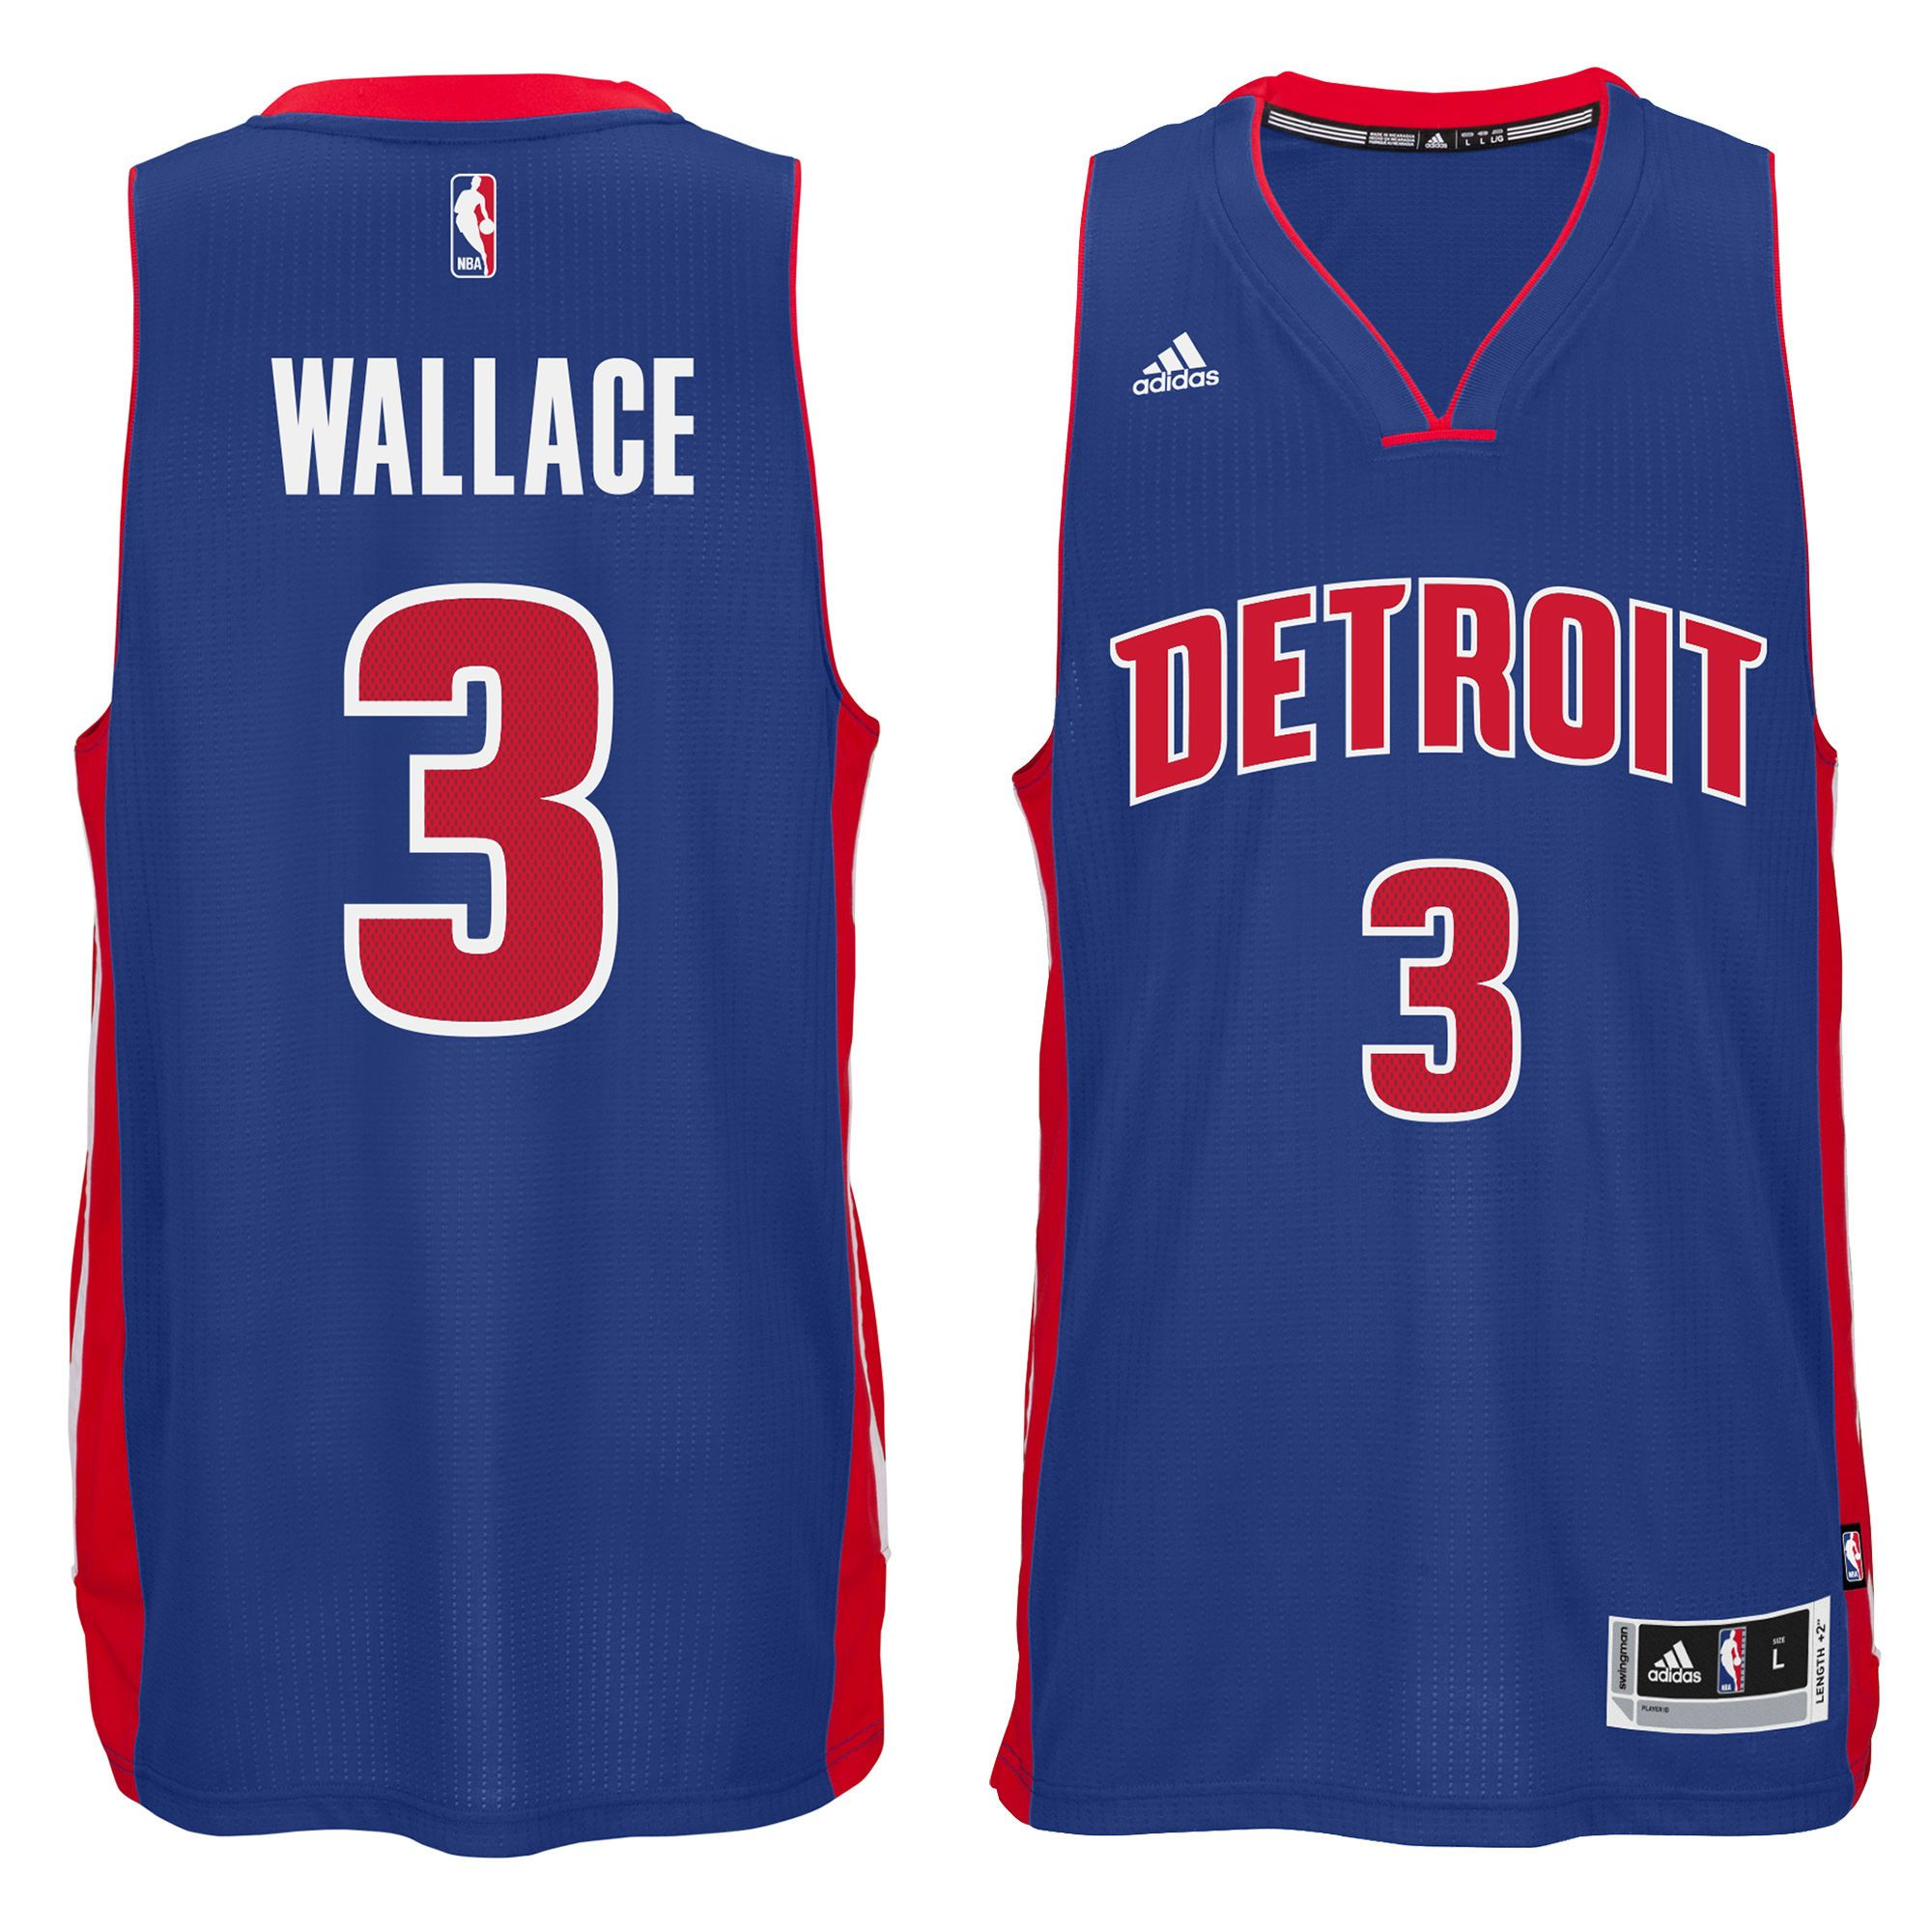 ff806bde Men's Detroit Pistons Ben Wallace adidas Royal Swingman Alternate Jersey  Ben Wallace, Nba Store,